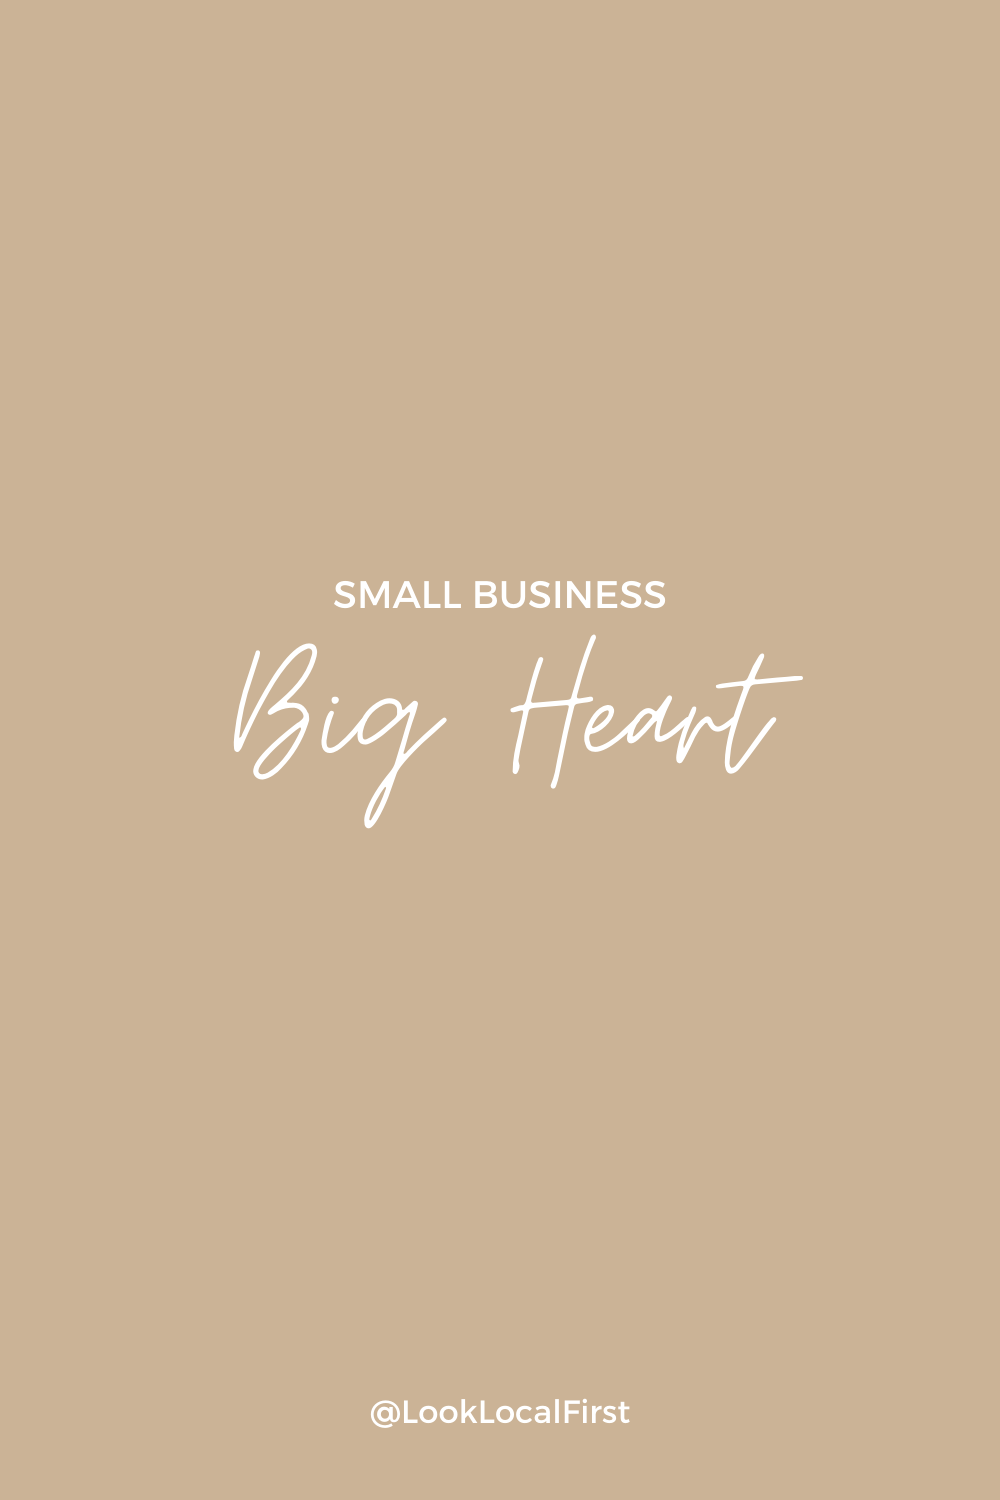 Small Business, Big Heart